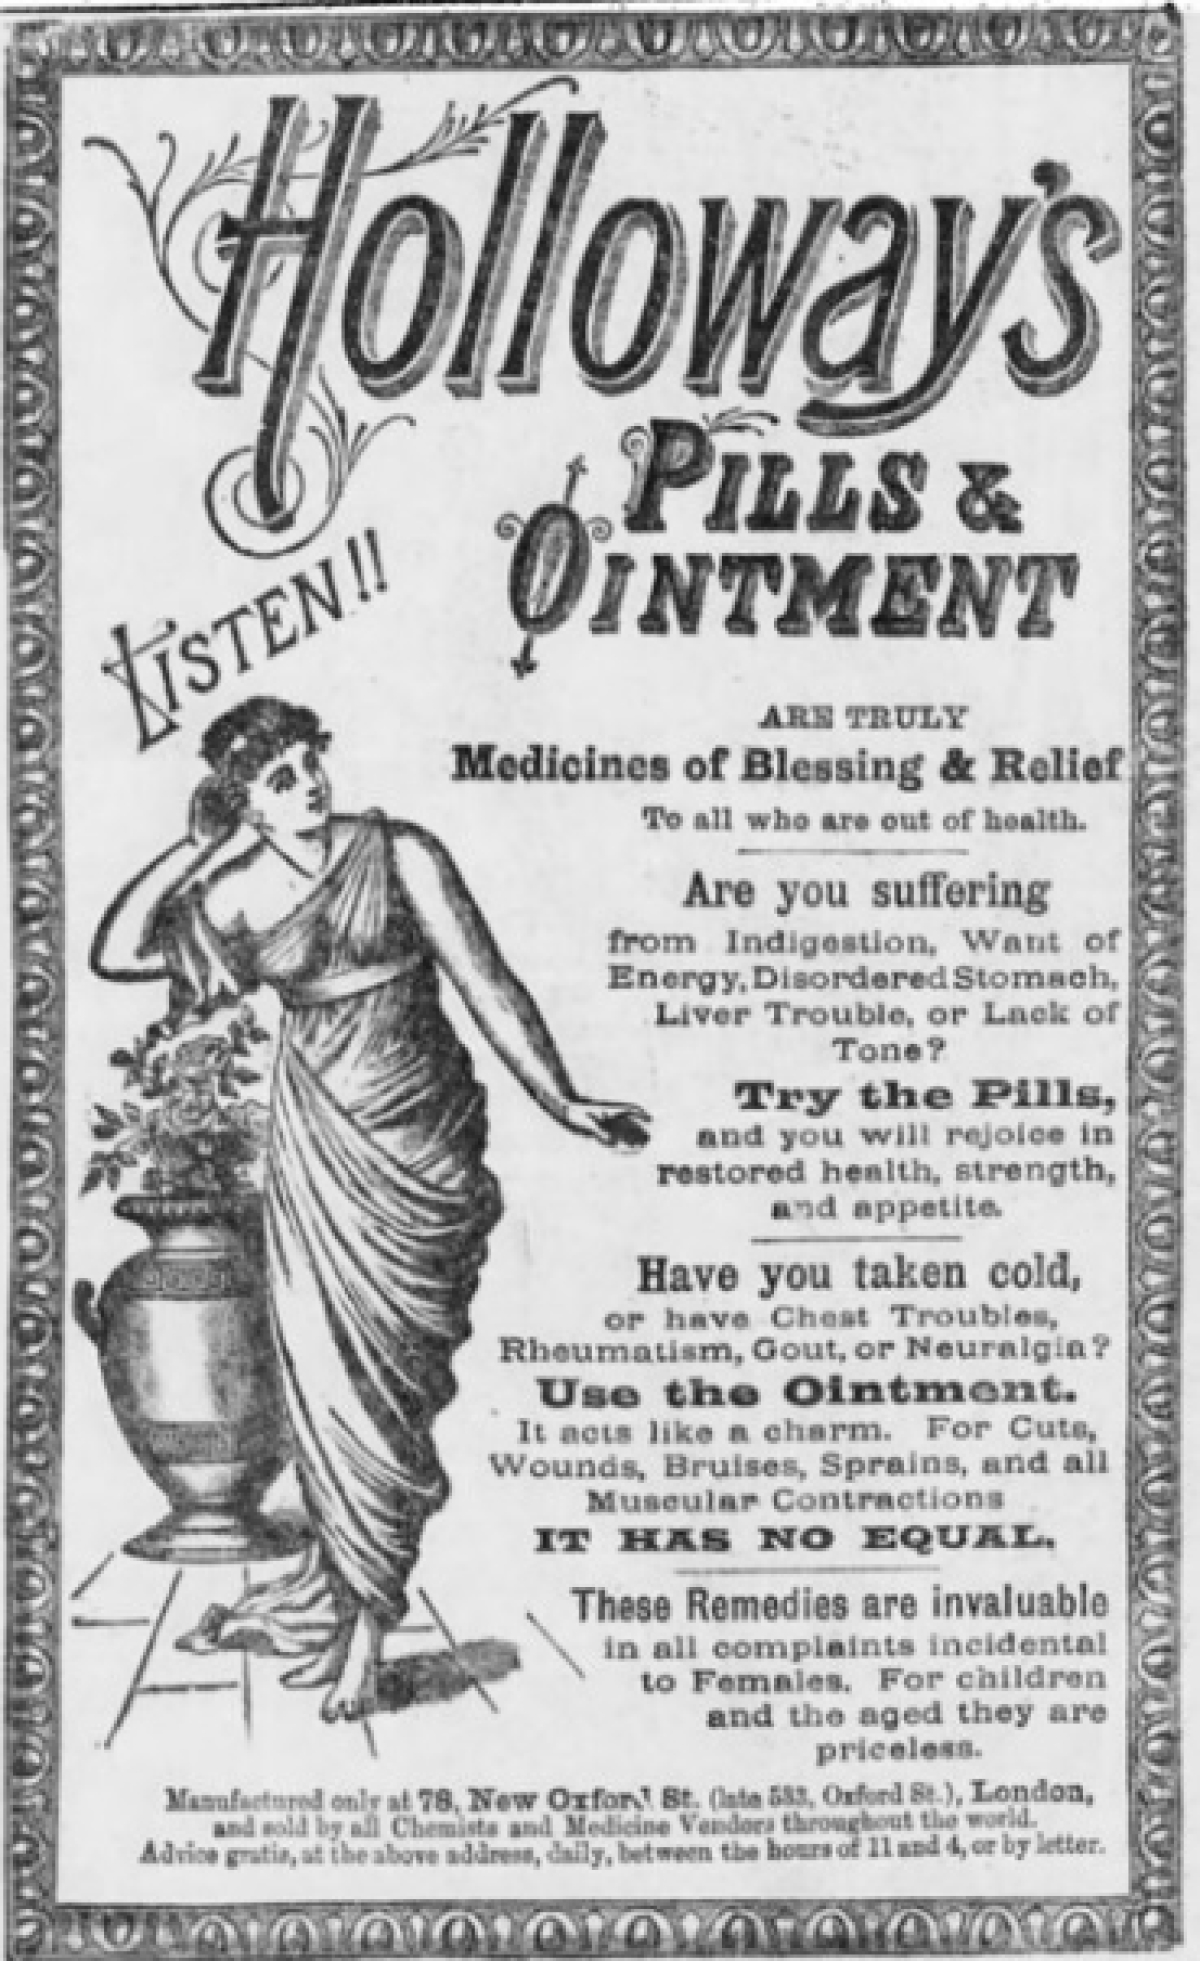 An old ad for Holloway's medicines